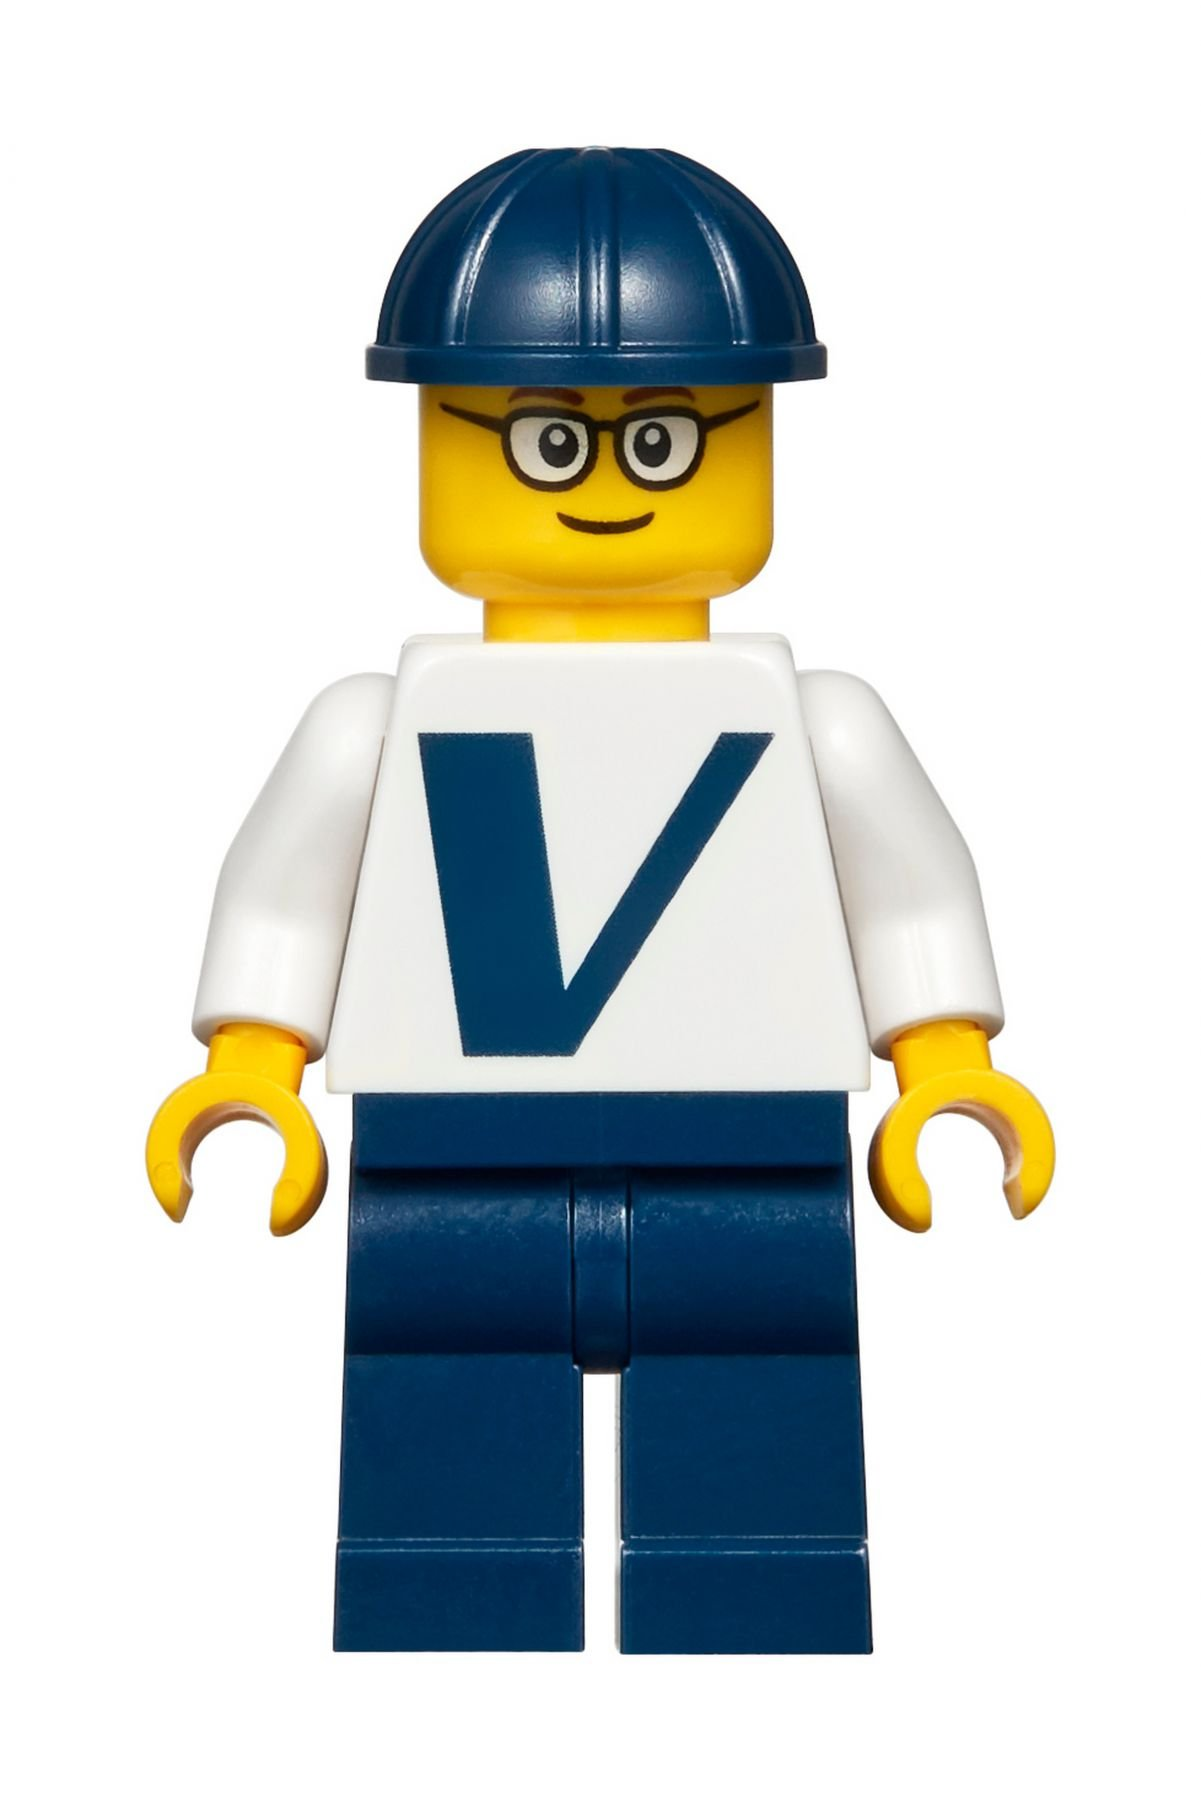 LEGO Advanced Models 10268 Vestas® Windkraftanlage LEGO_10268_alt18.jpg